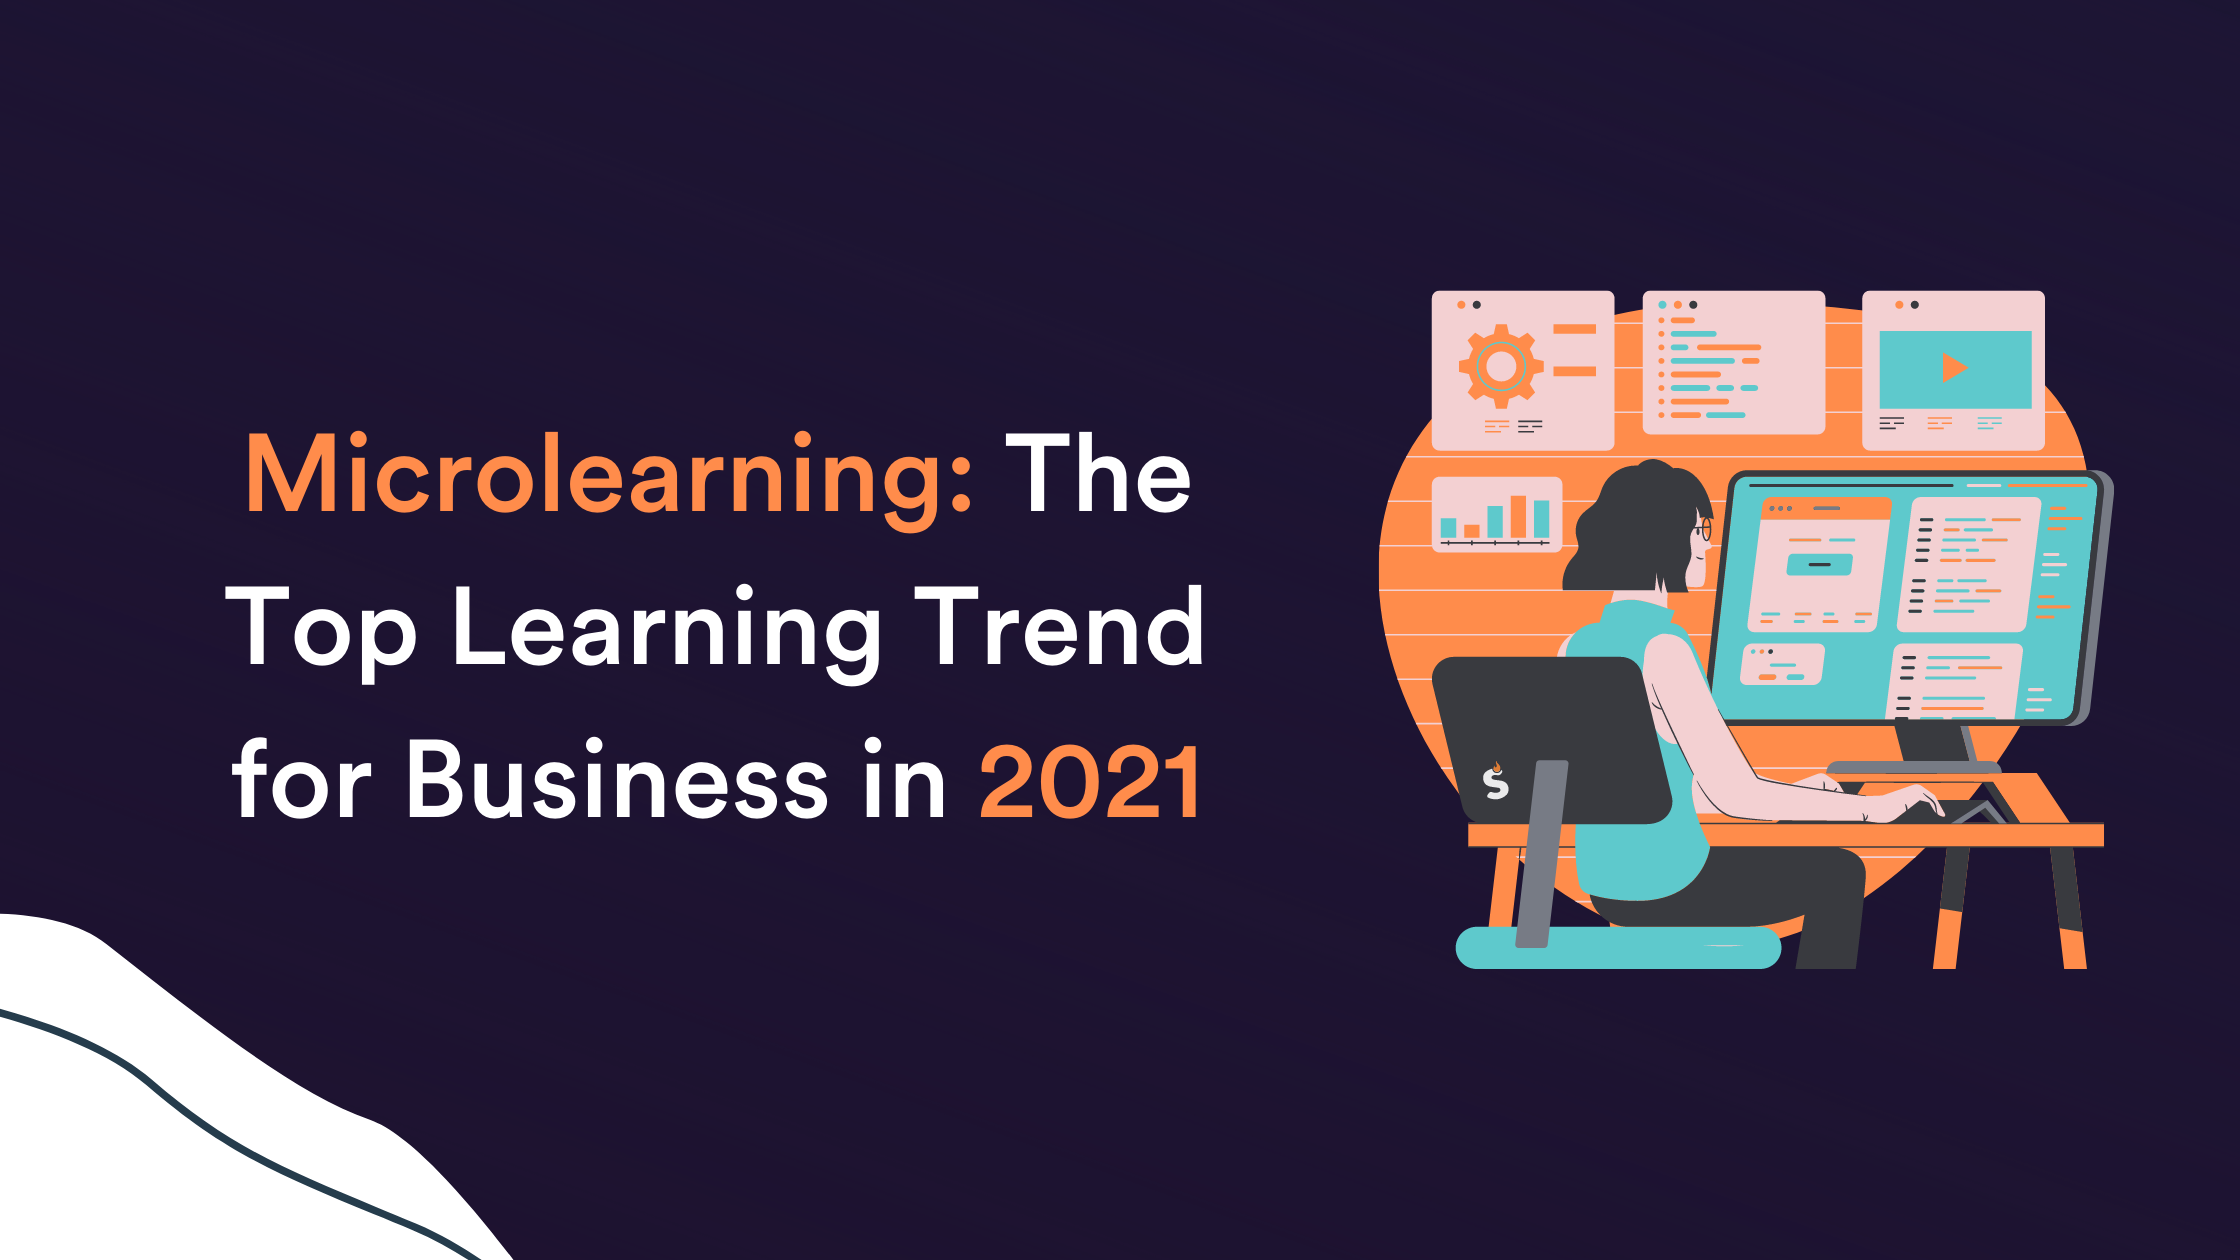 Microlearning: The Top Learning Trend for Business in 2021